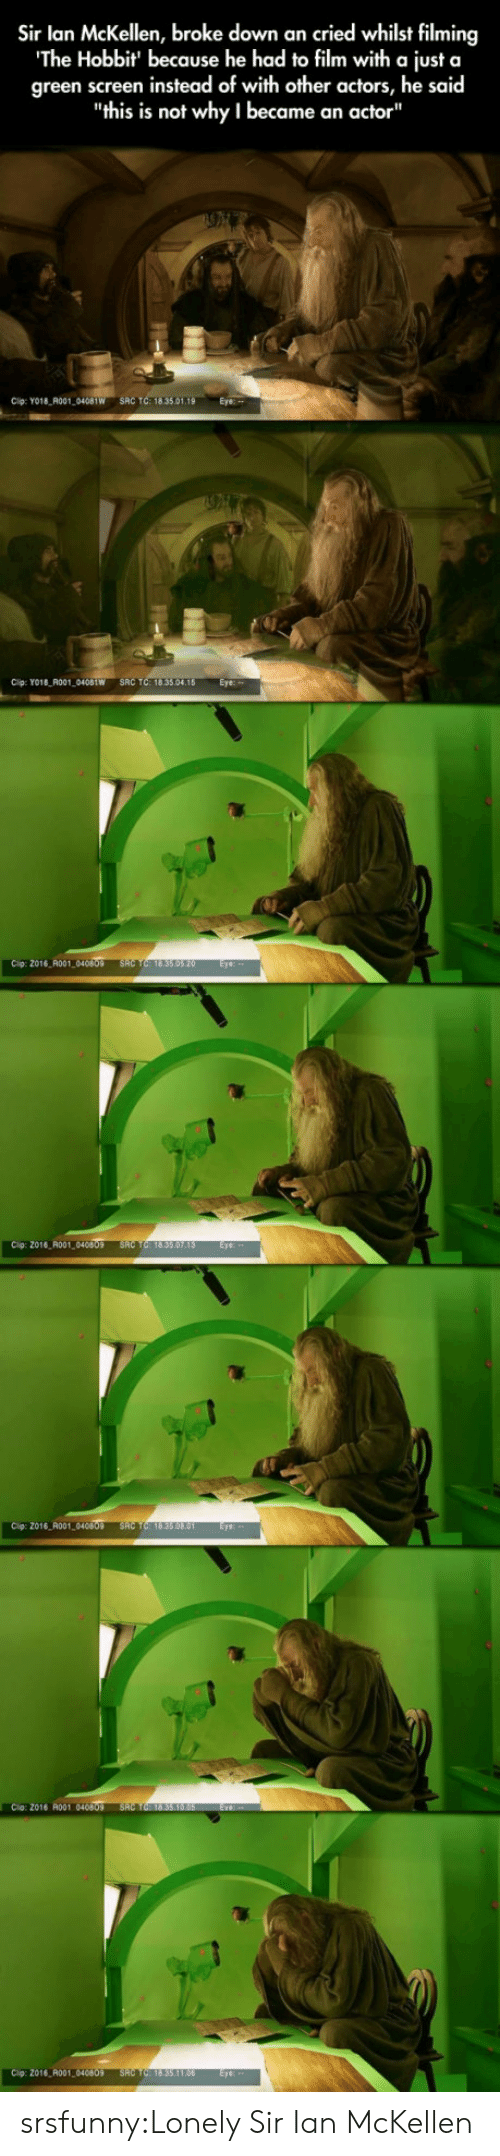 "green screen: Sir lan McKellen, broke down an cried whilst filming  The Hobbit' because he had to film with a just a  green screen instead of with other actors, he said  ""this is not why I became an actor""  Cip: YO18 R001 04081W SRC TC: 18.35.01  Cip: Yo18 R001 0401W SRC TC: 18.33.04.18 Eye  Cip: 2016 A001  2016 R001,040809  Clip: 2016 R001  Cio Z016 ol 040  016 R001 04080 srsfunny:Lonely Sir Ian McKellen"